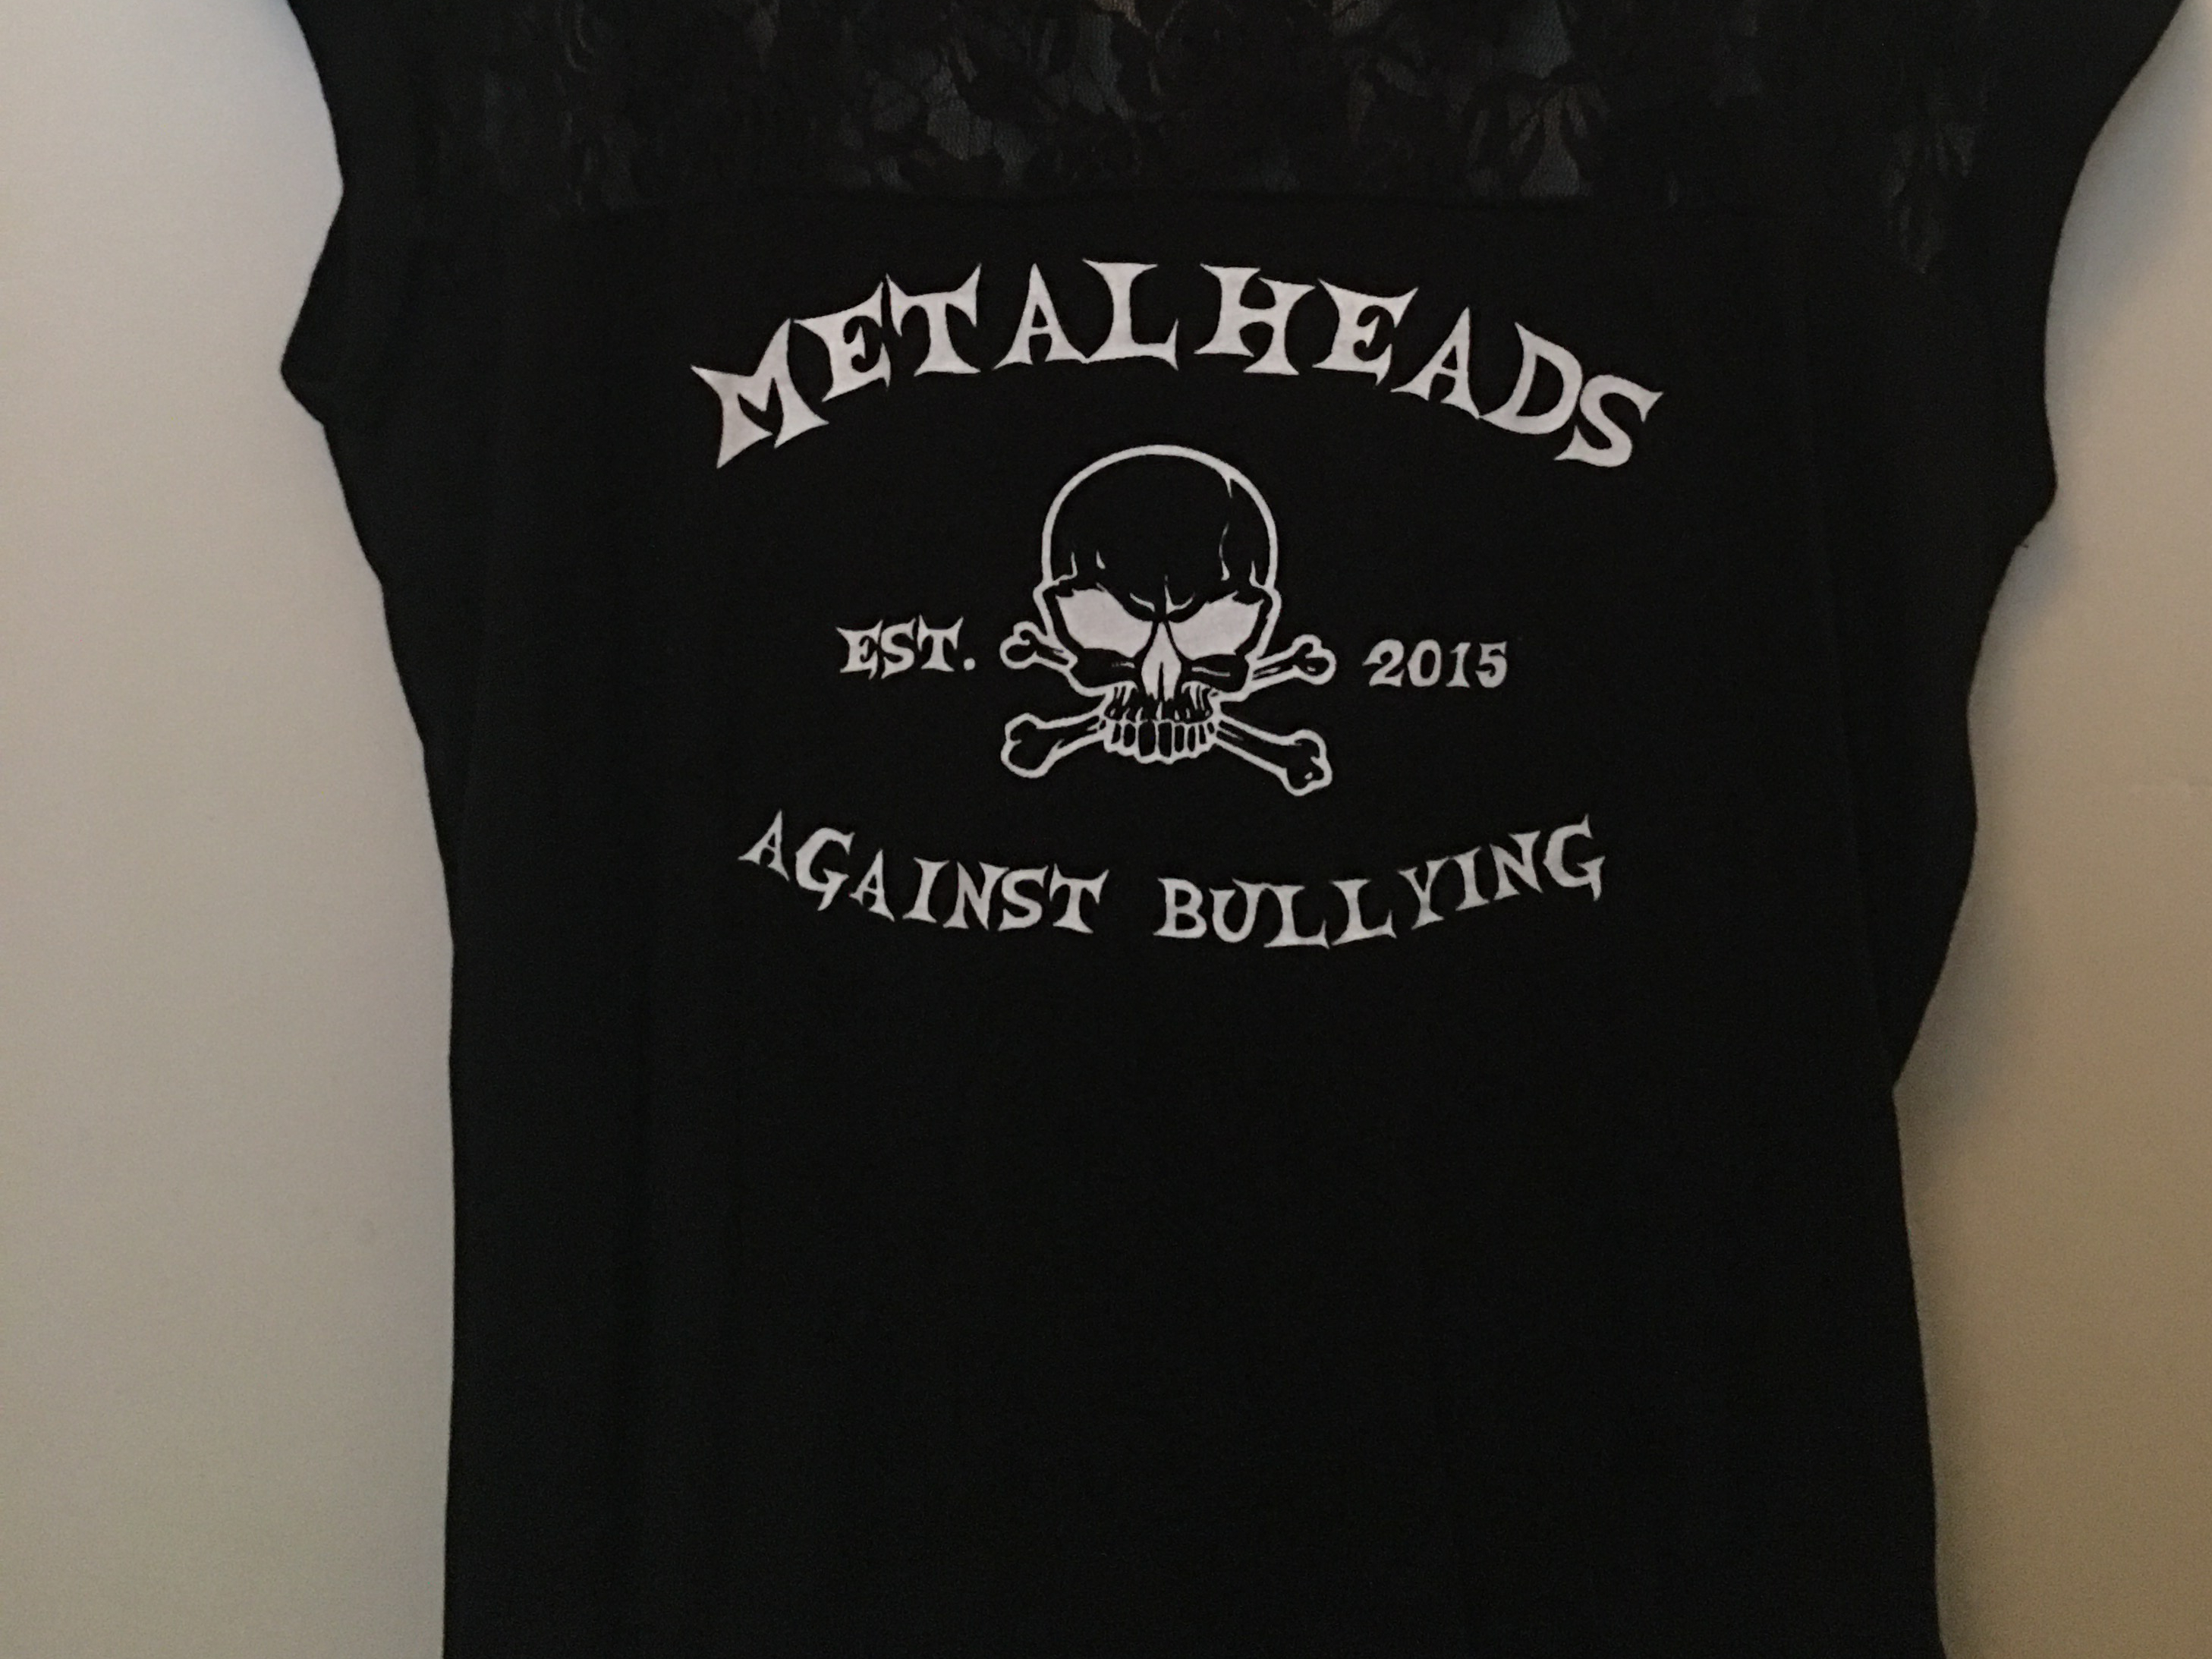 Metalheads Against Bullying